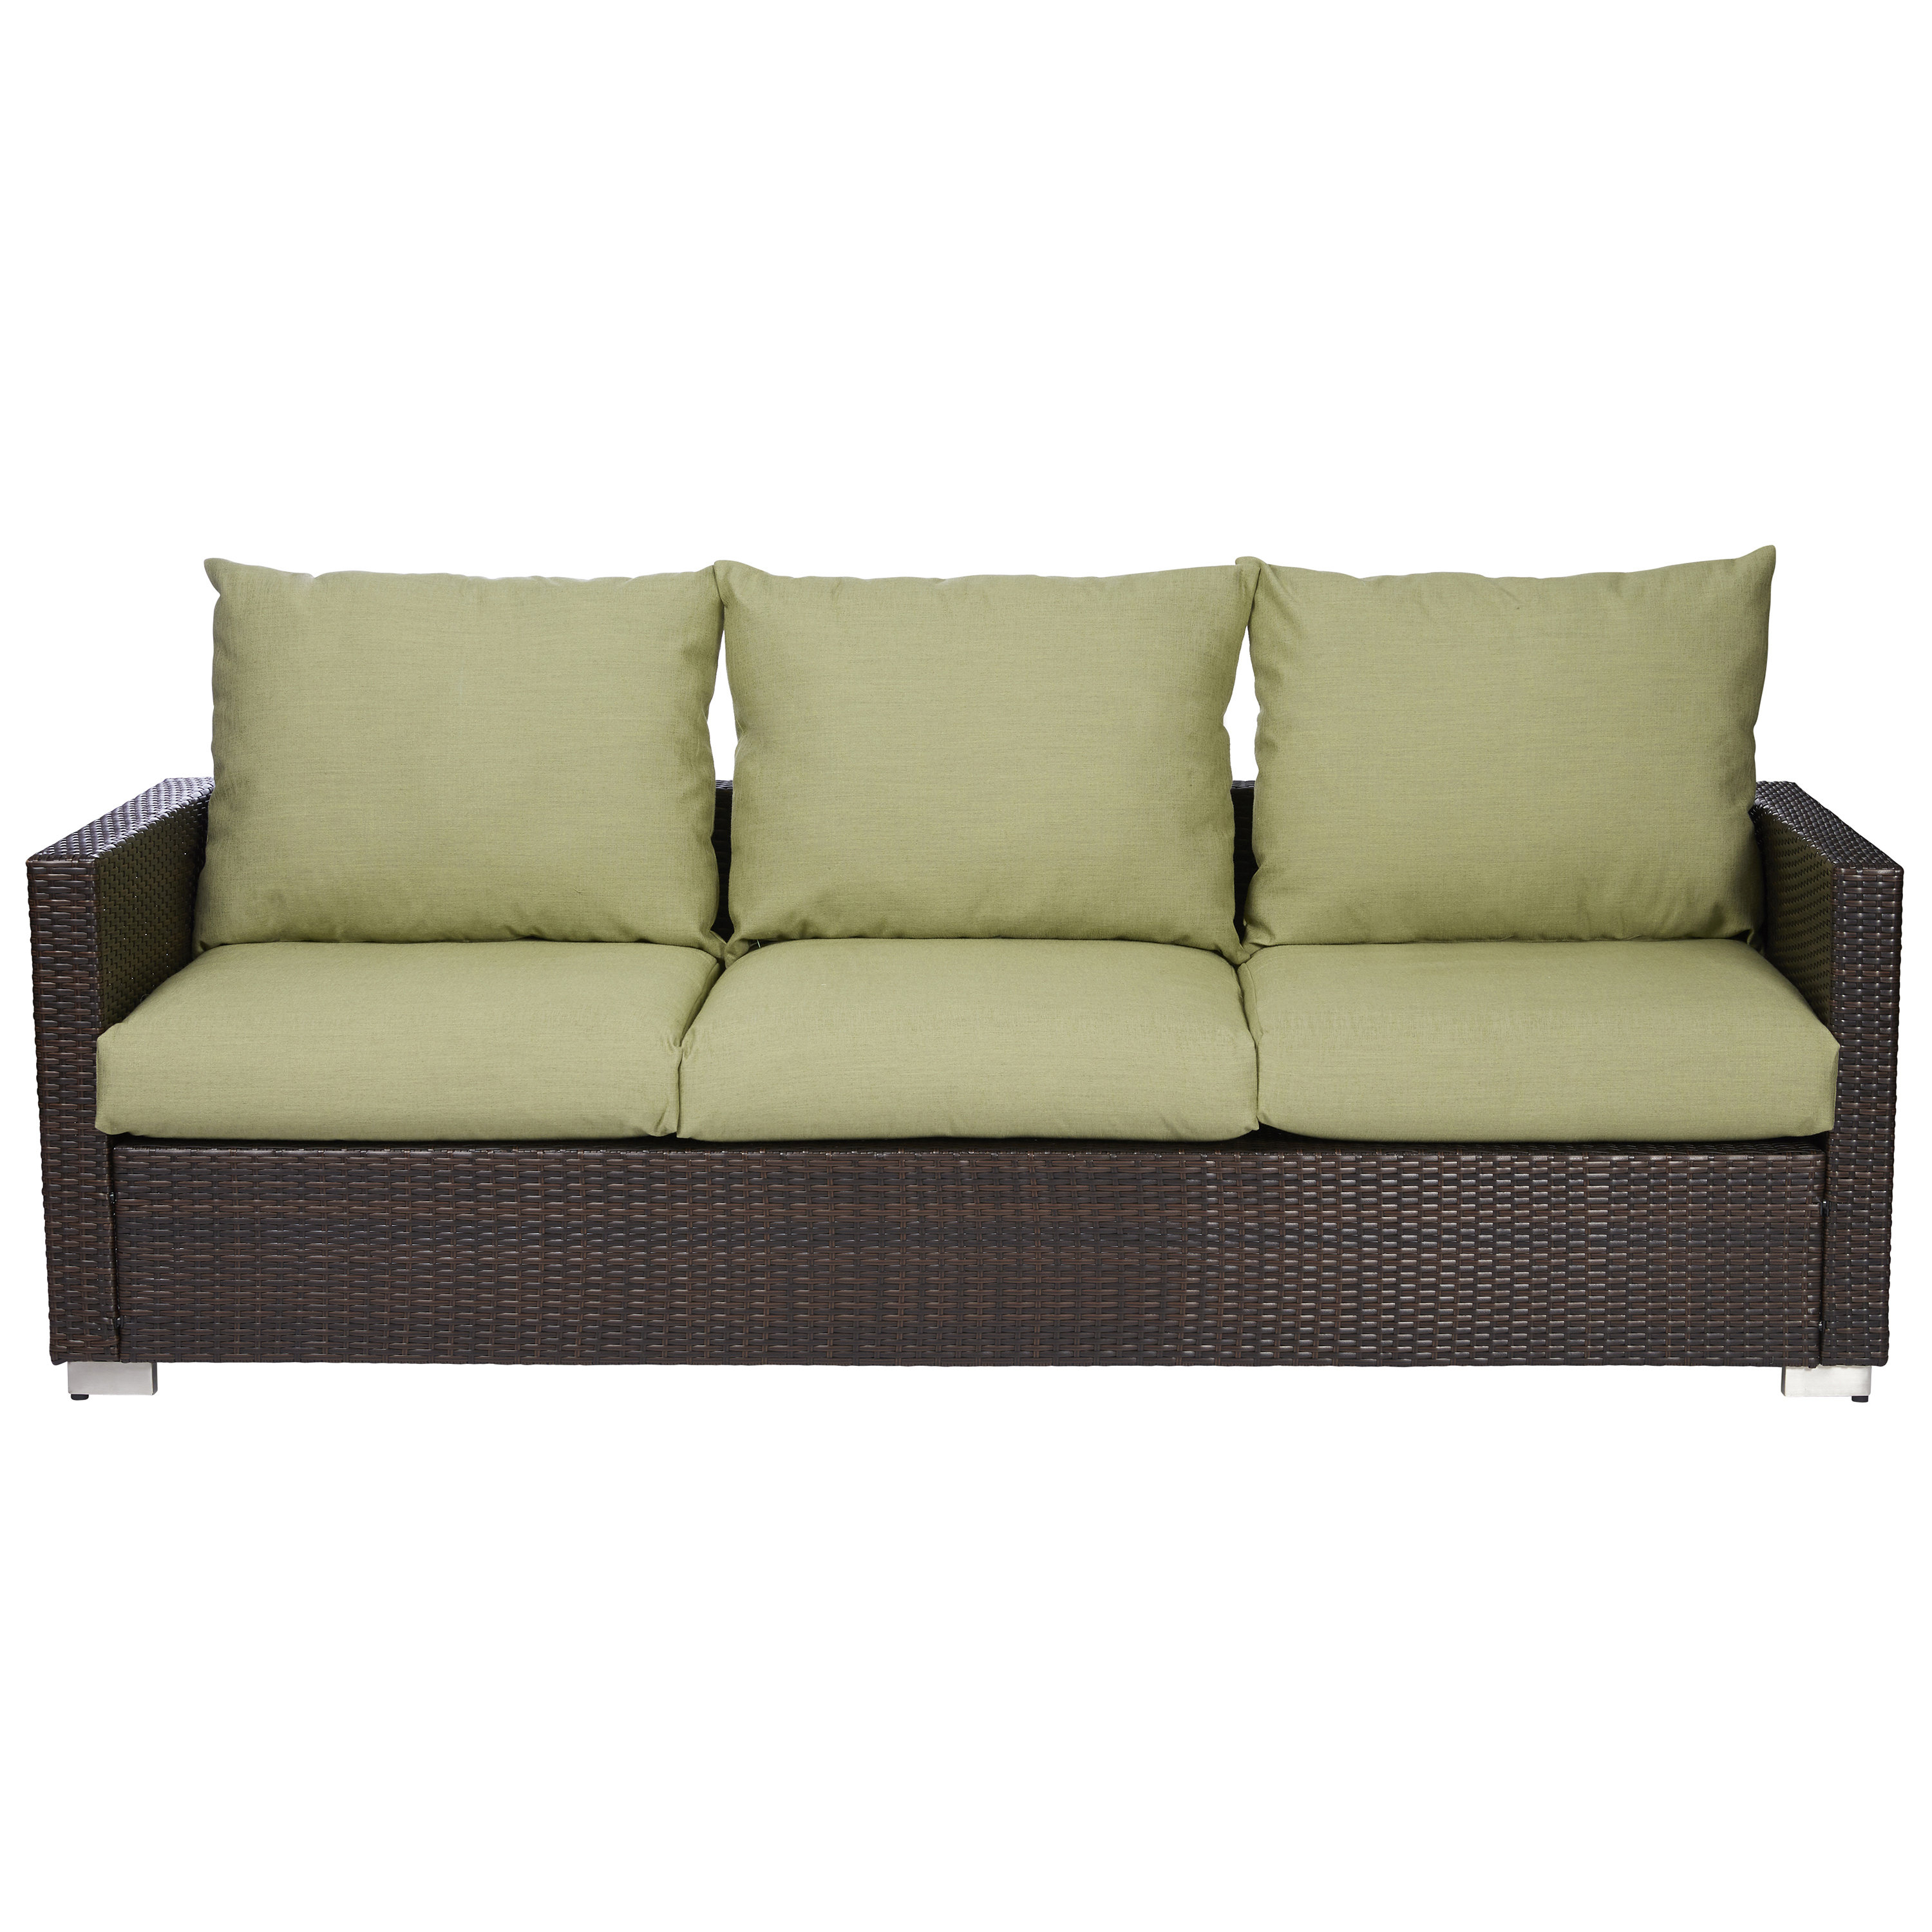 Most Recent Mcmanis Patio Sofa With Cushion In Hursey Patio Sofas (View 8 of 20)